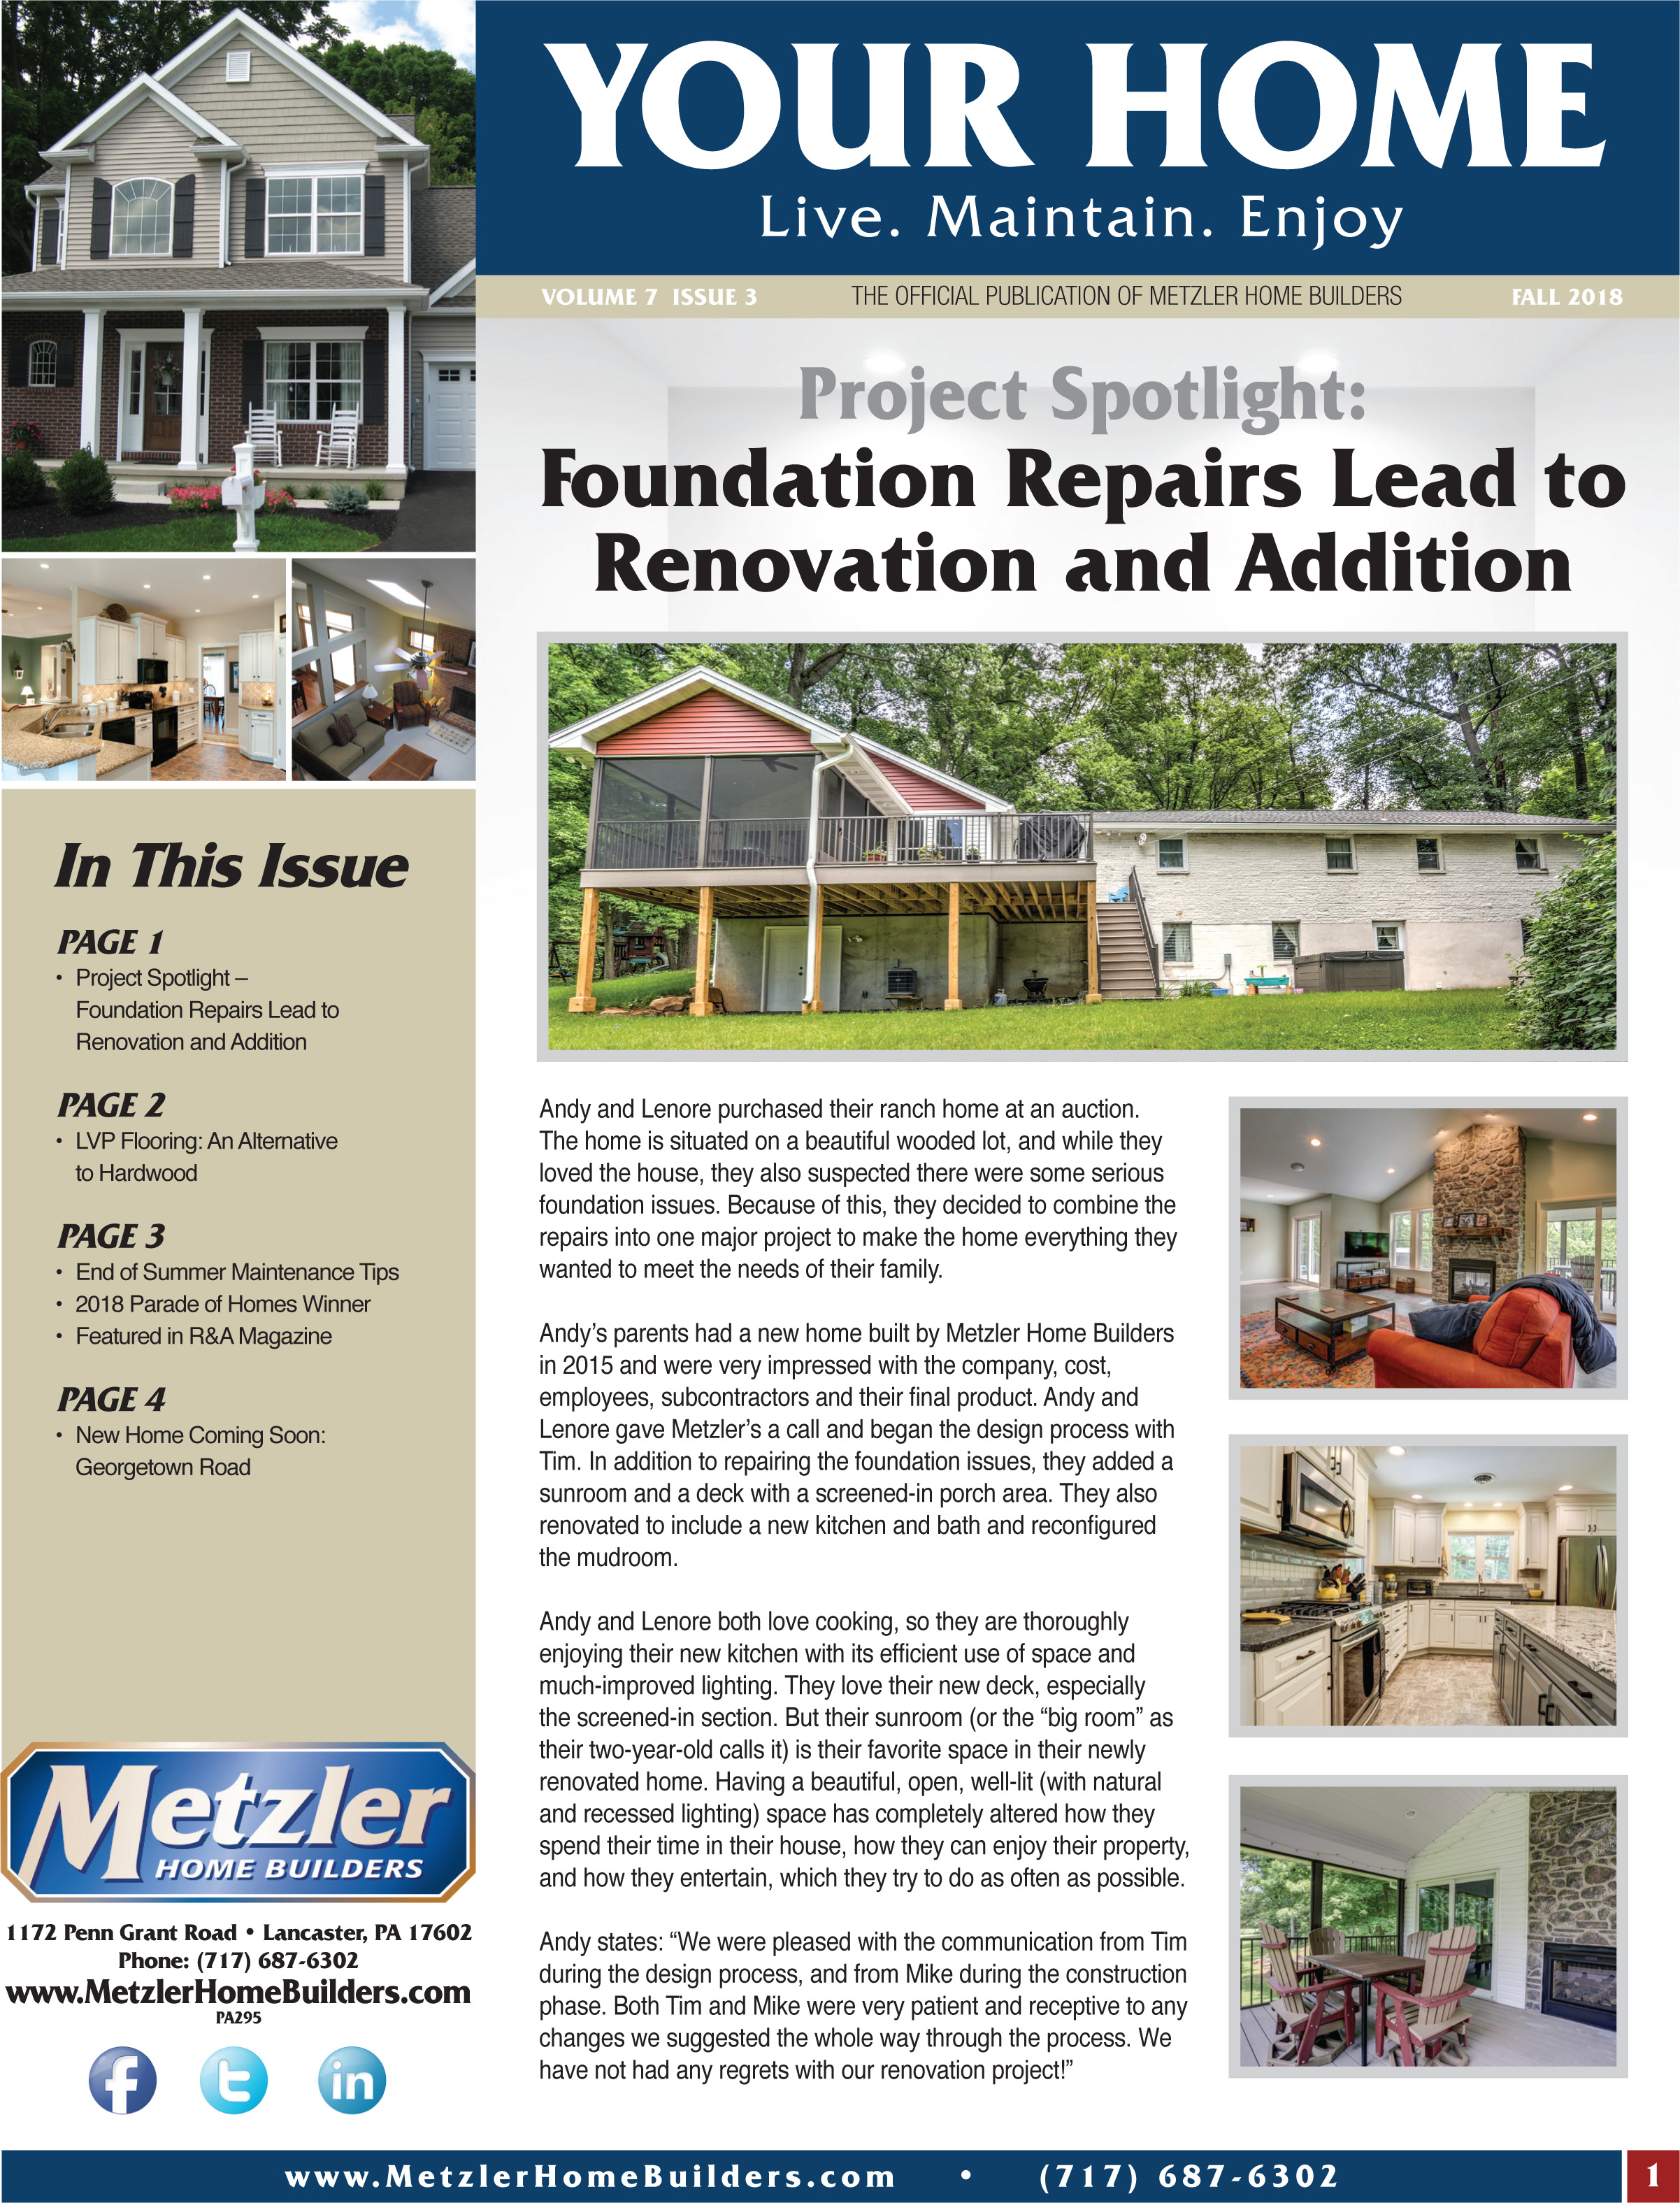 Metzler 'Your Home' Newsletter PDF cover for Volume 7 Issue 3